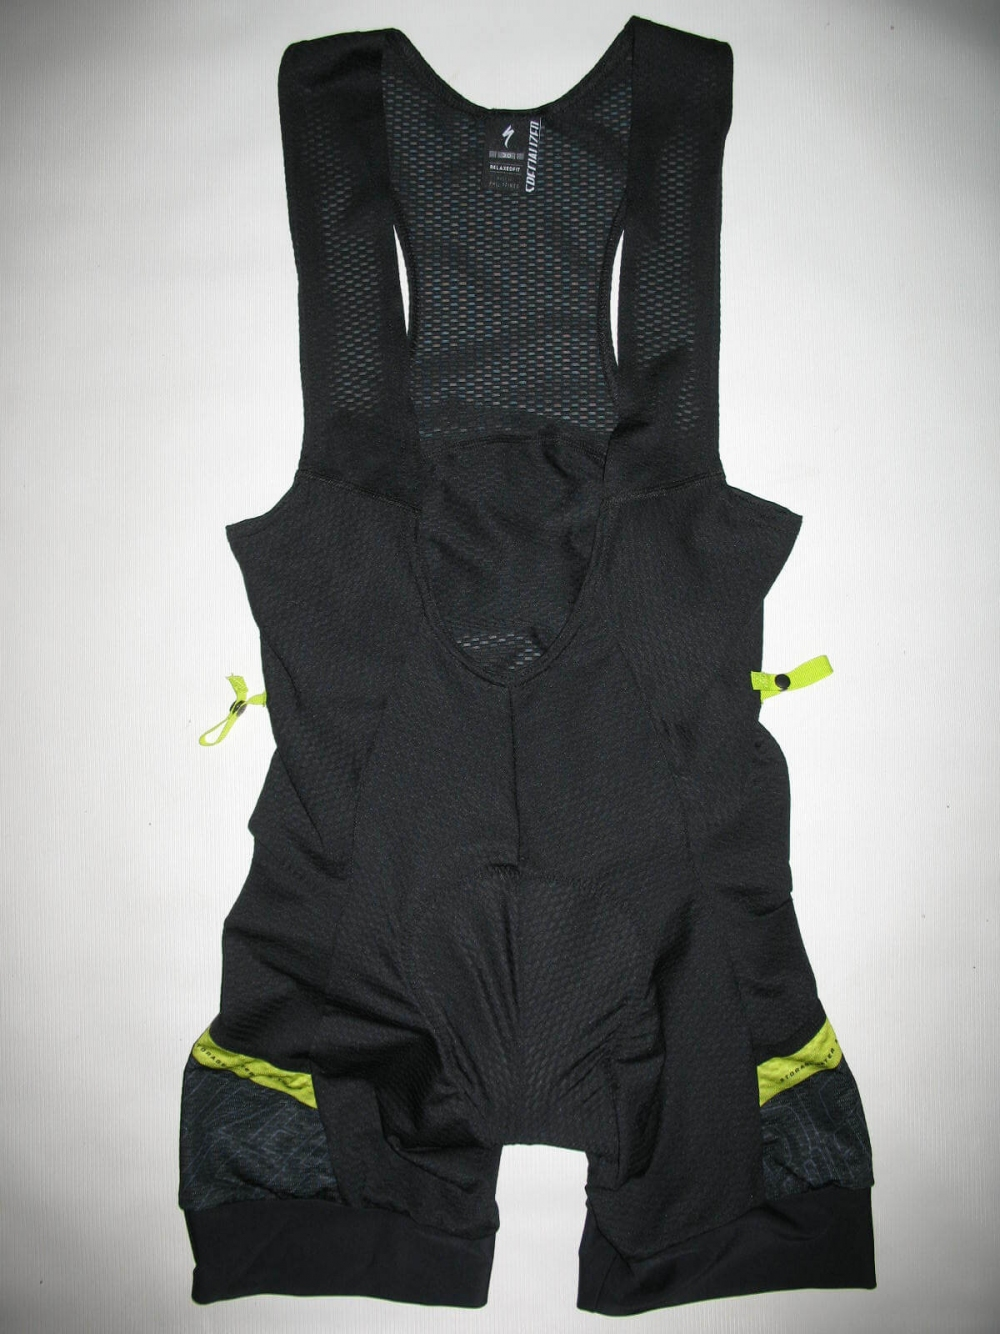 Велошорты SPECIALIZED swat bib shorts (размер 30/S) - 7